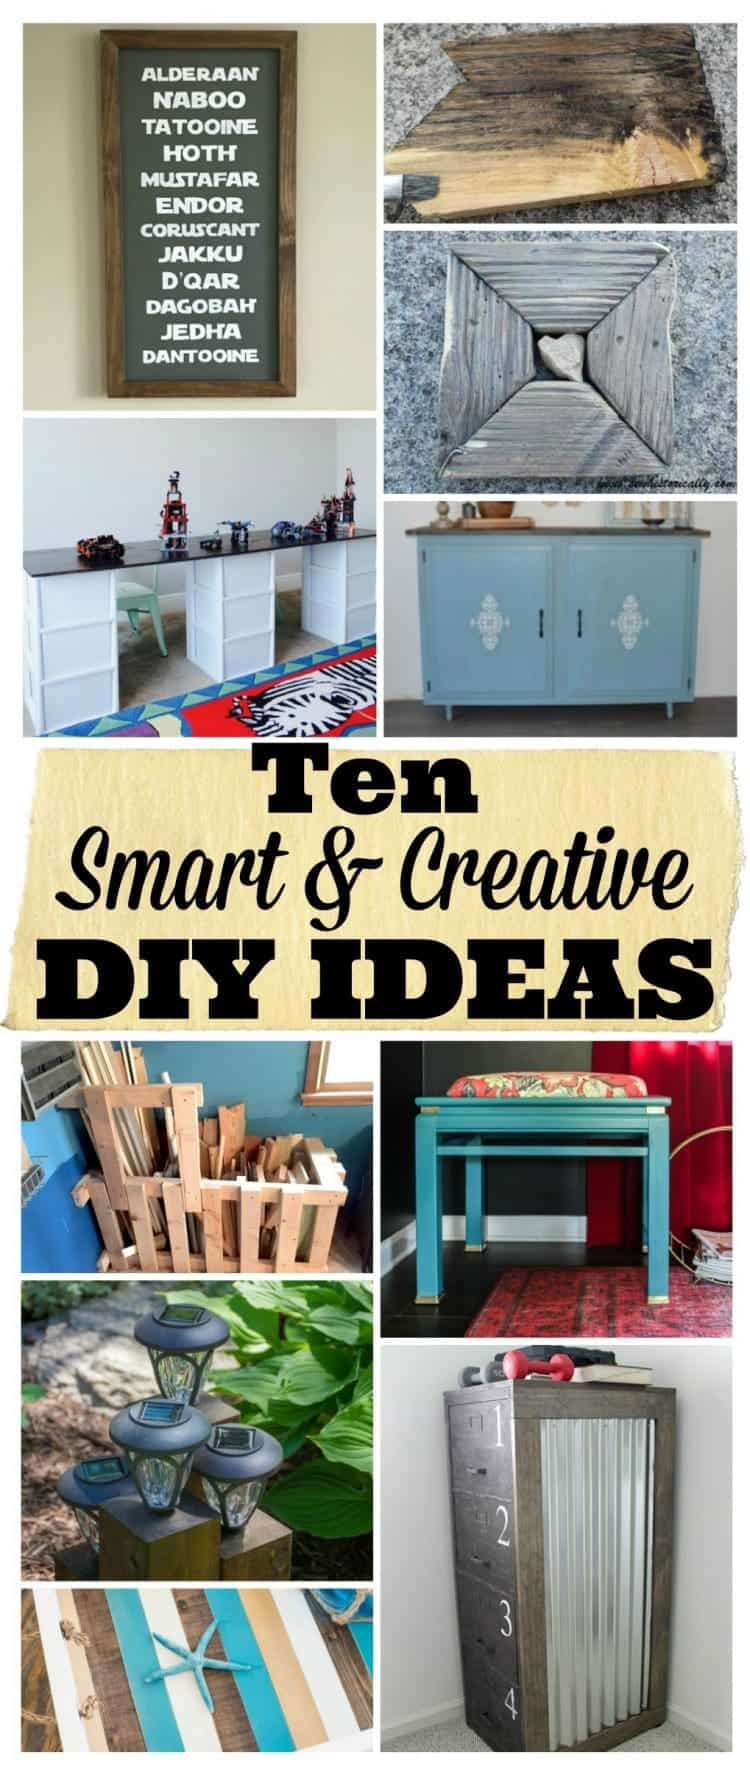 10 Smart and Creative DIY Ideas